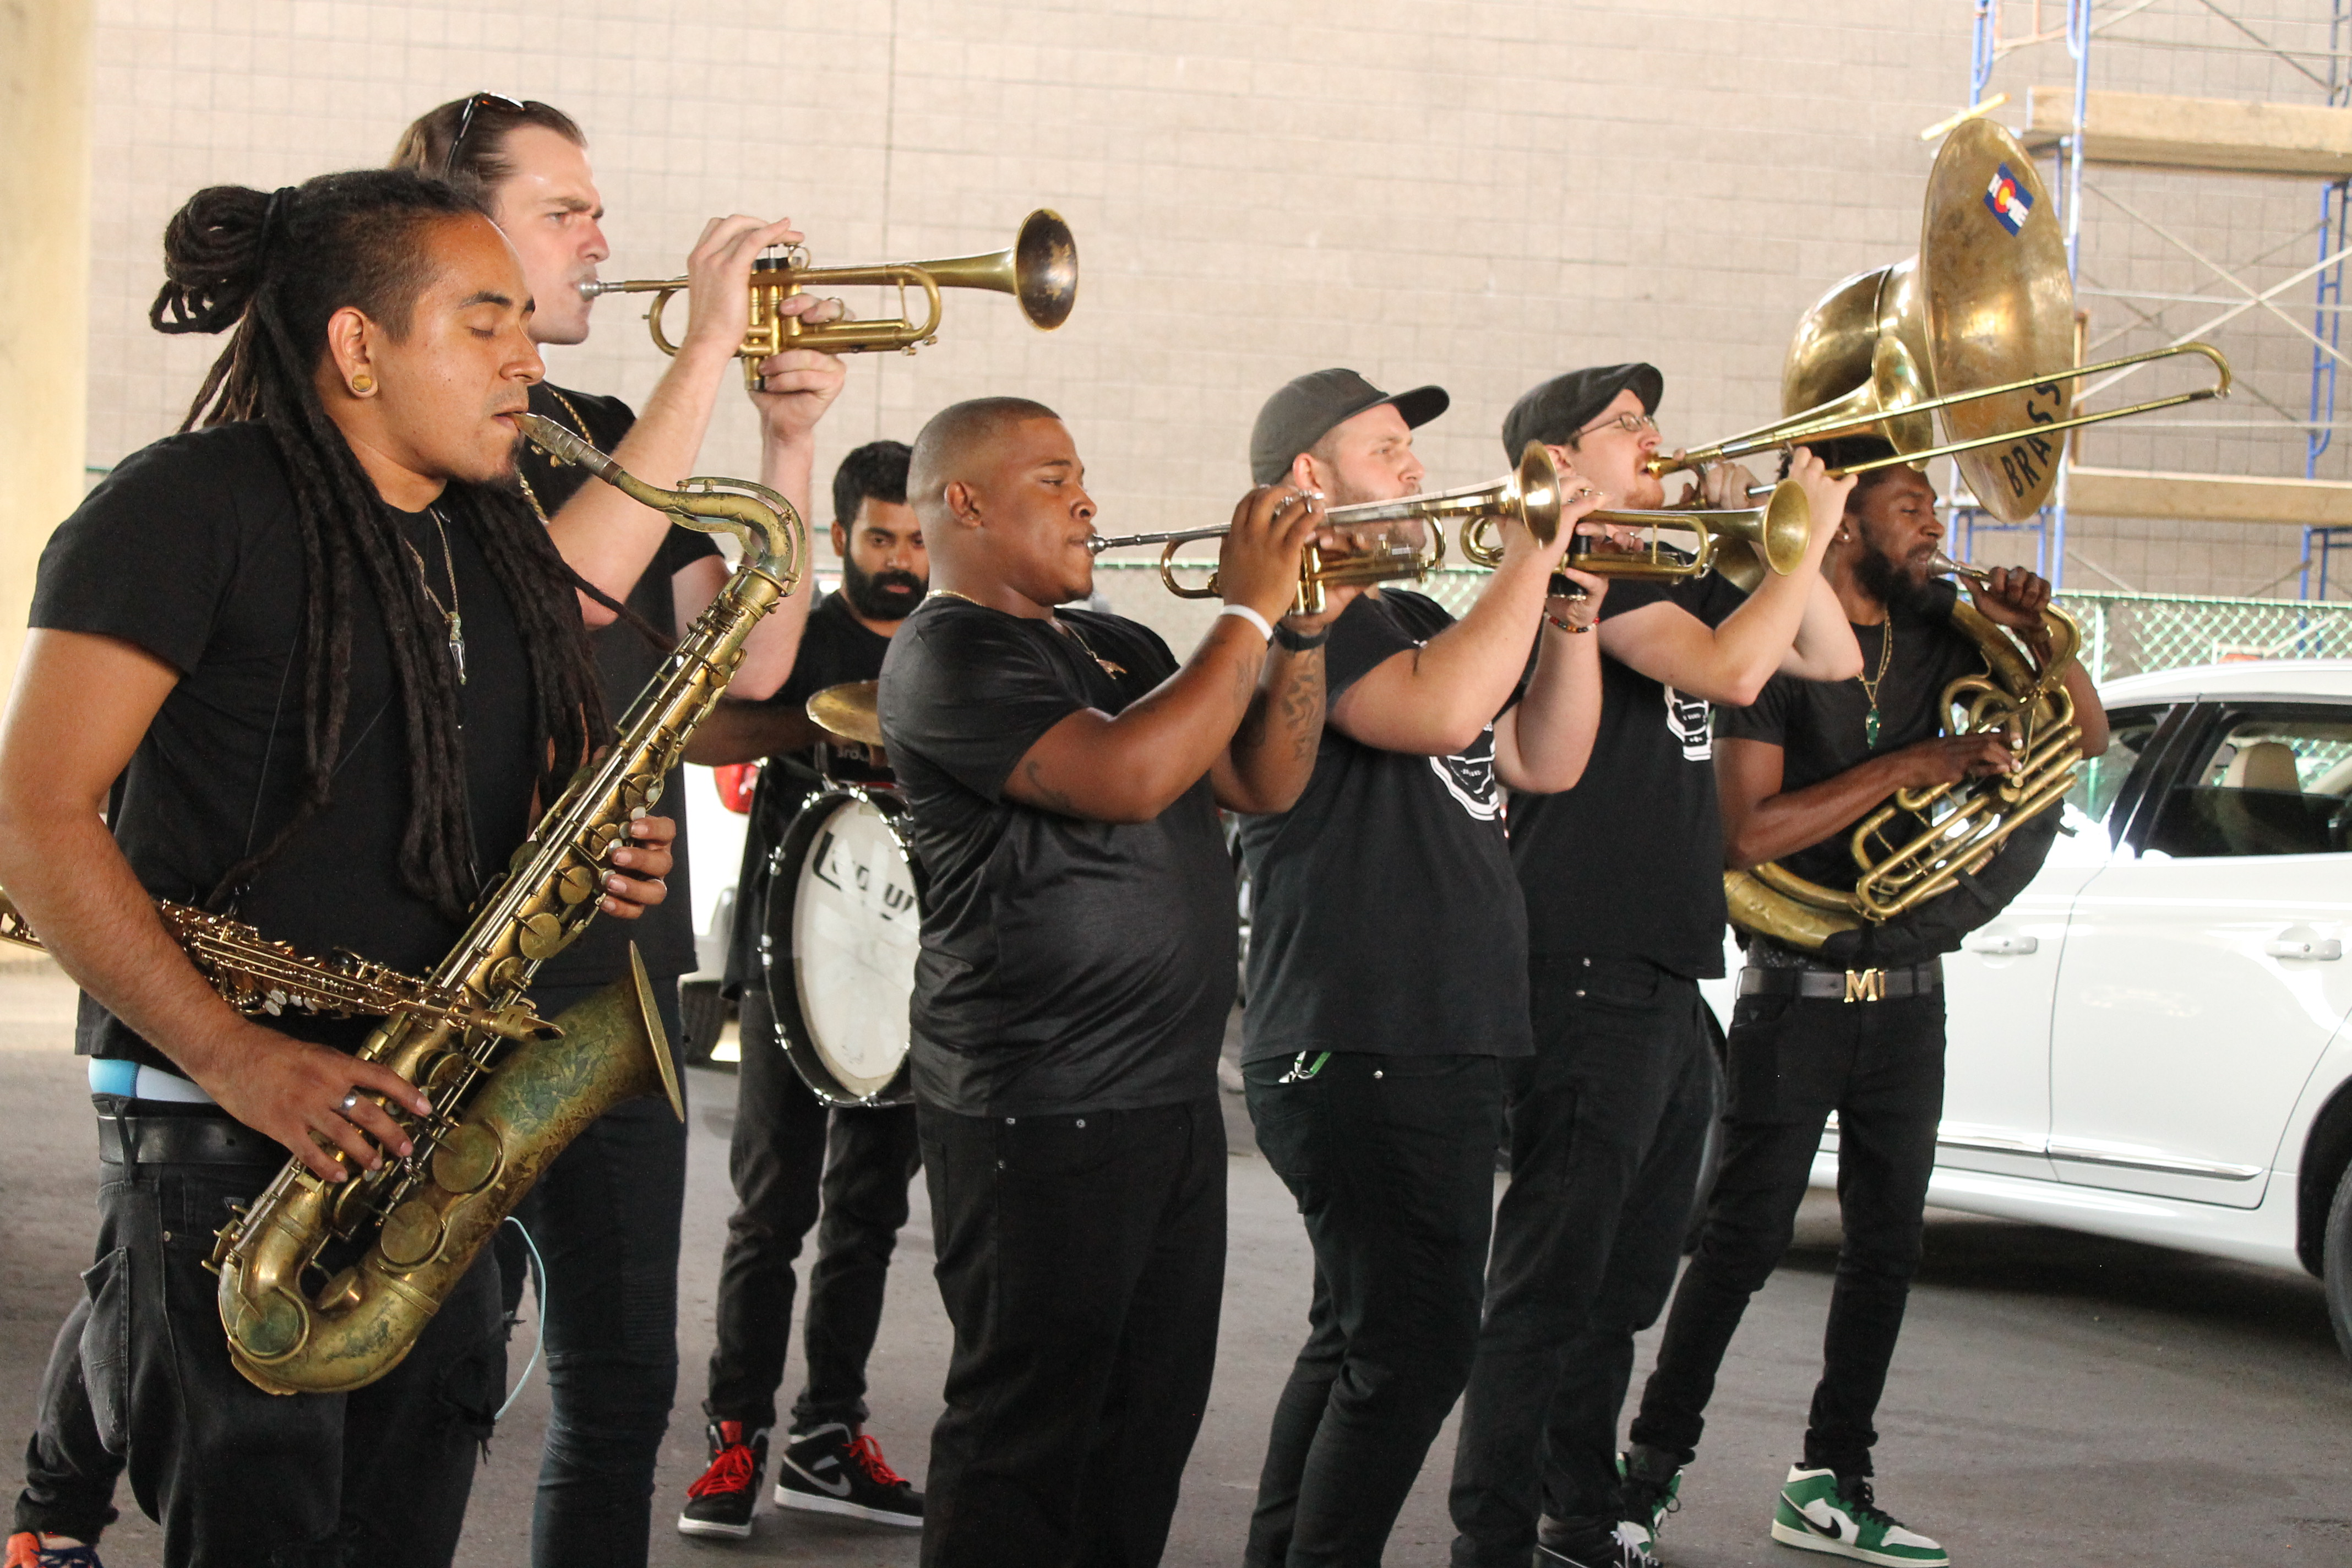 Brass band playing music in parking lot